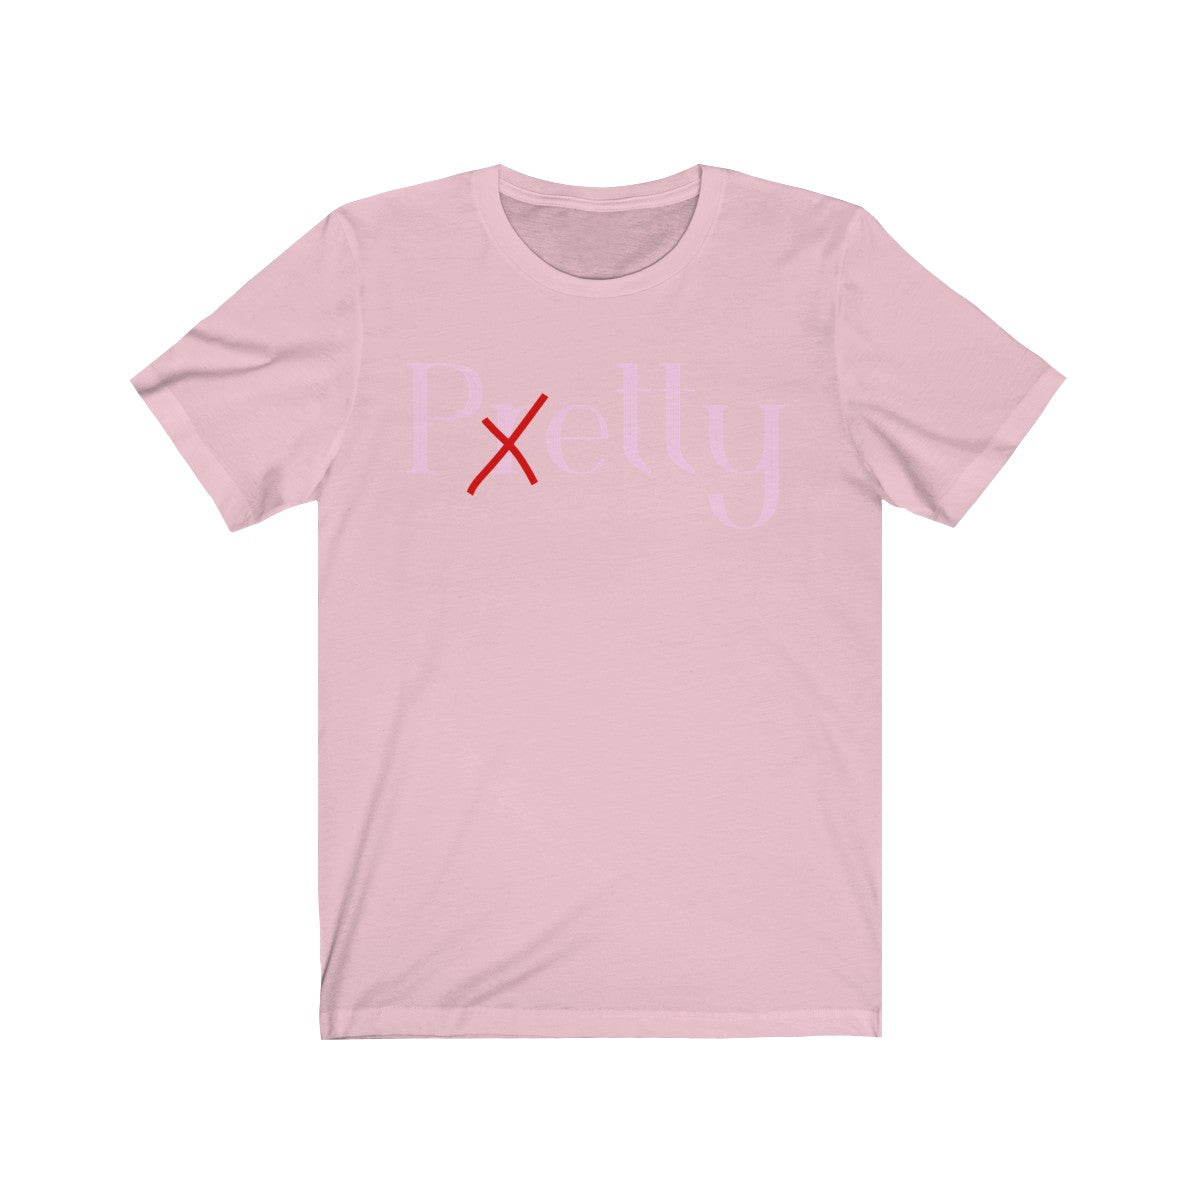 (Petty) Unisex Jersey Short Sleeve Tee - LOL, I NEED That!